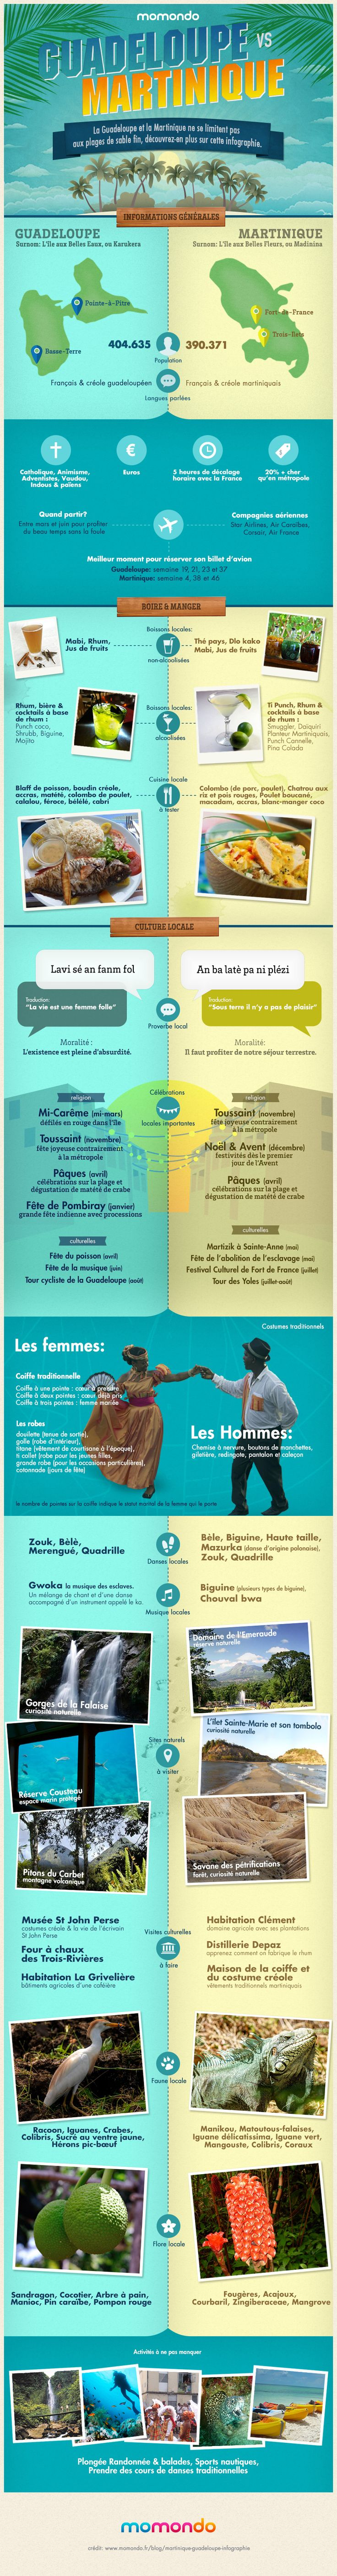 martinique et guadeloupe infographie